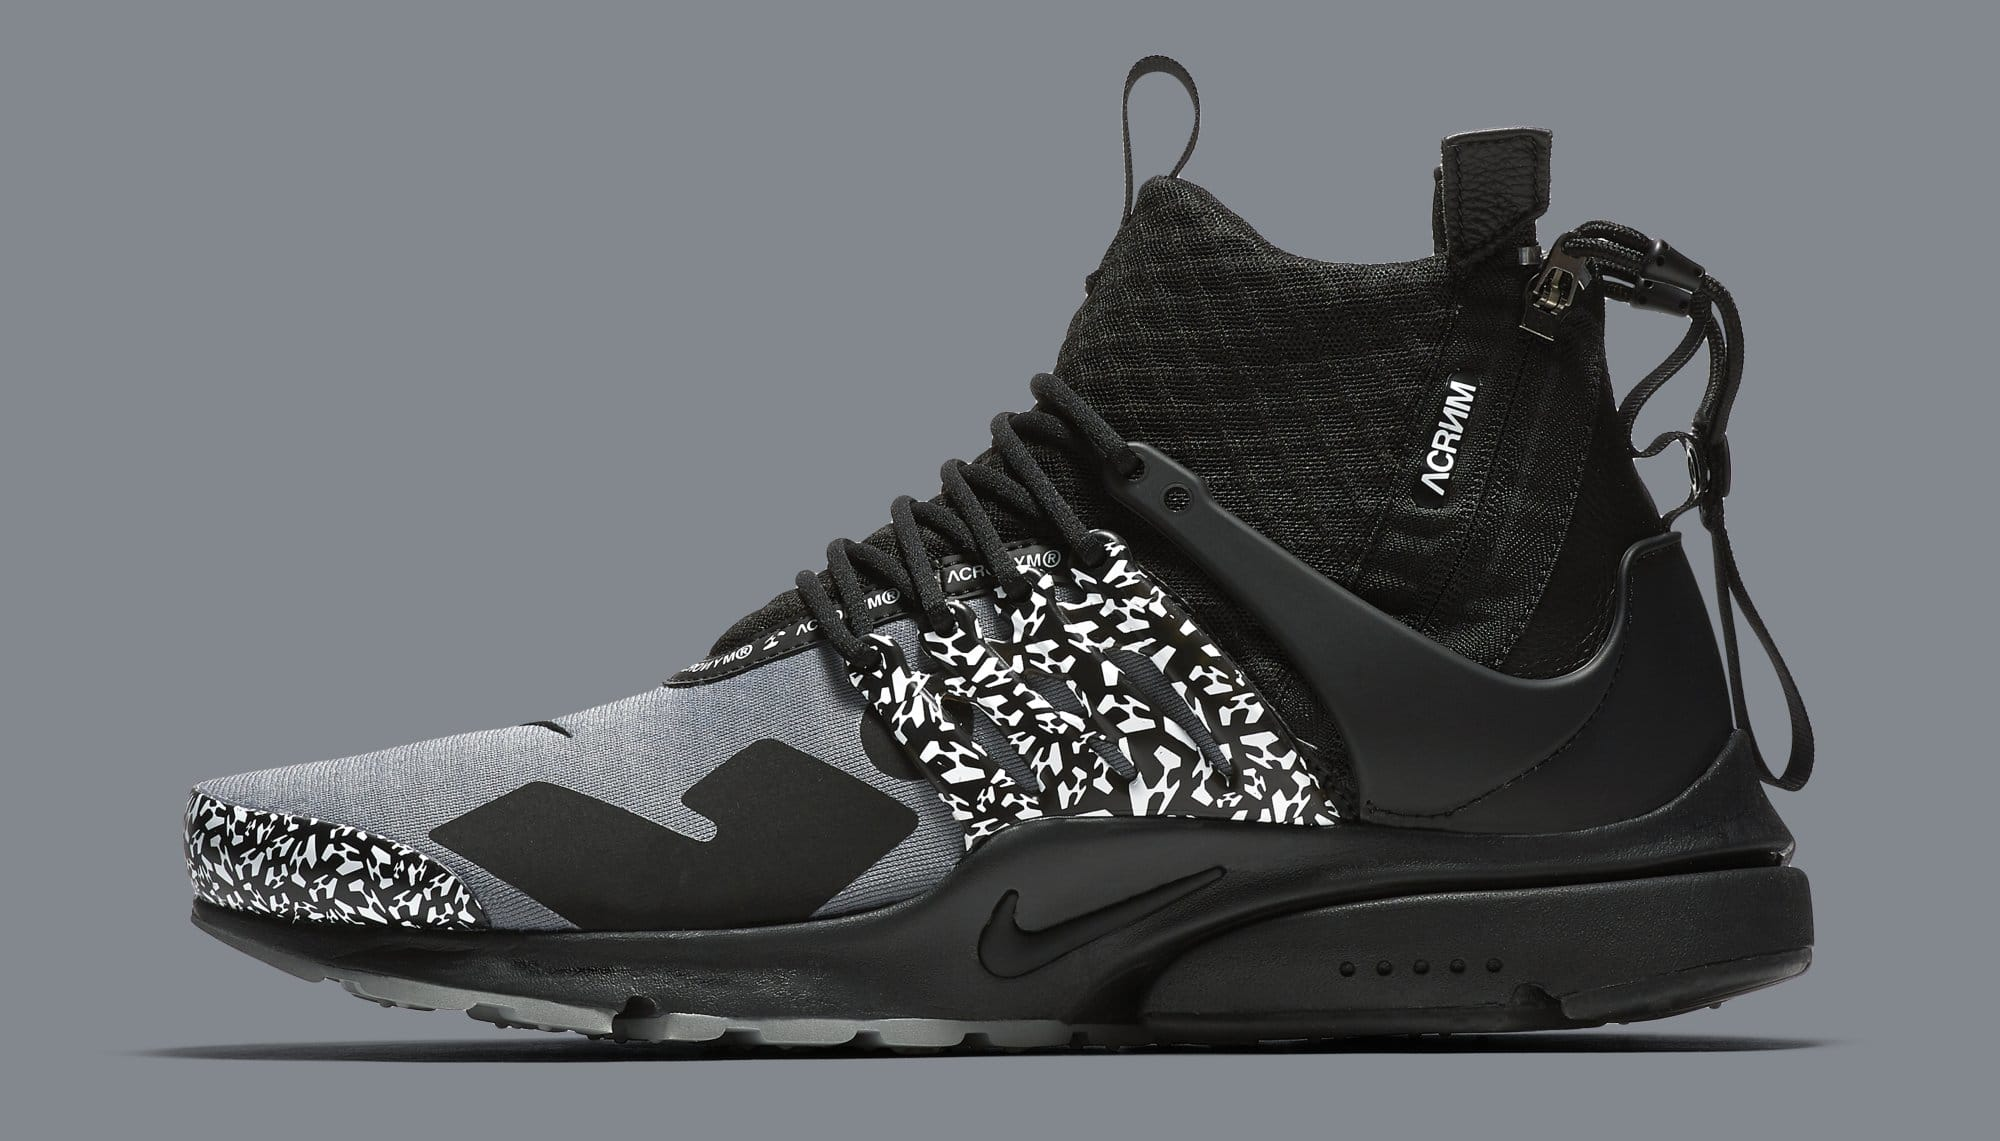 check out 14af7 49cb8 Acronym x Nike Presto Mid 2018 Collaboration | Sole Collector